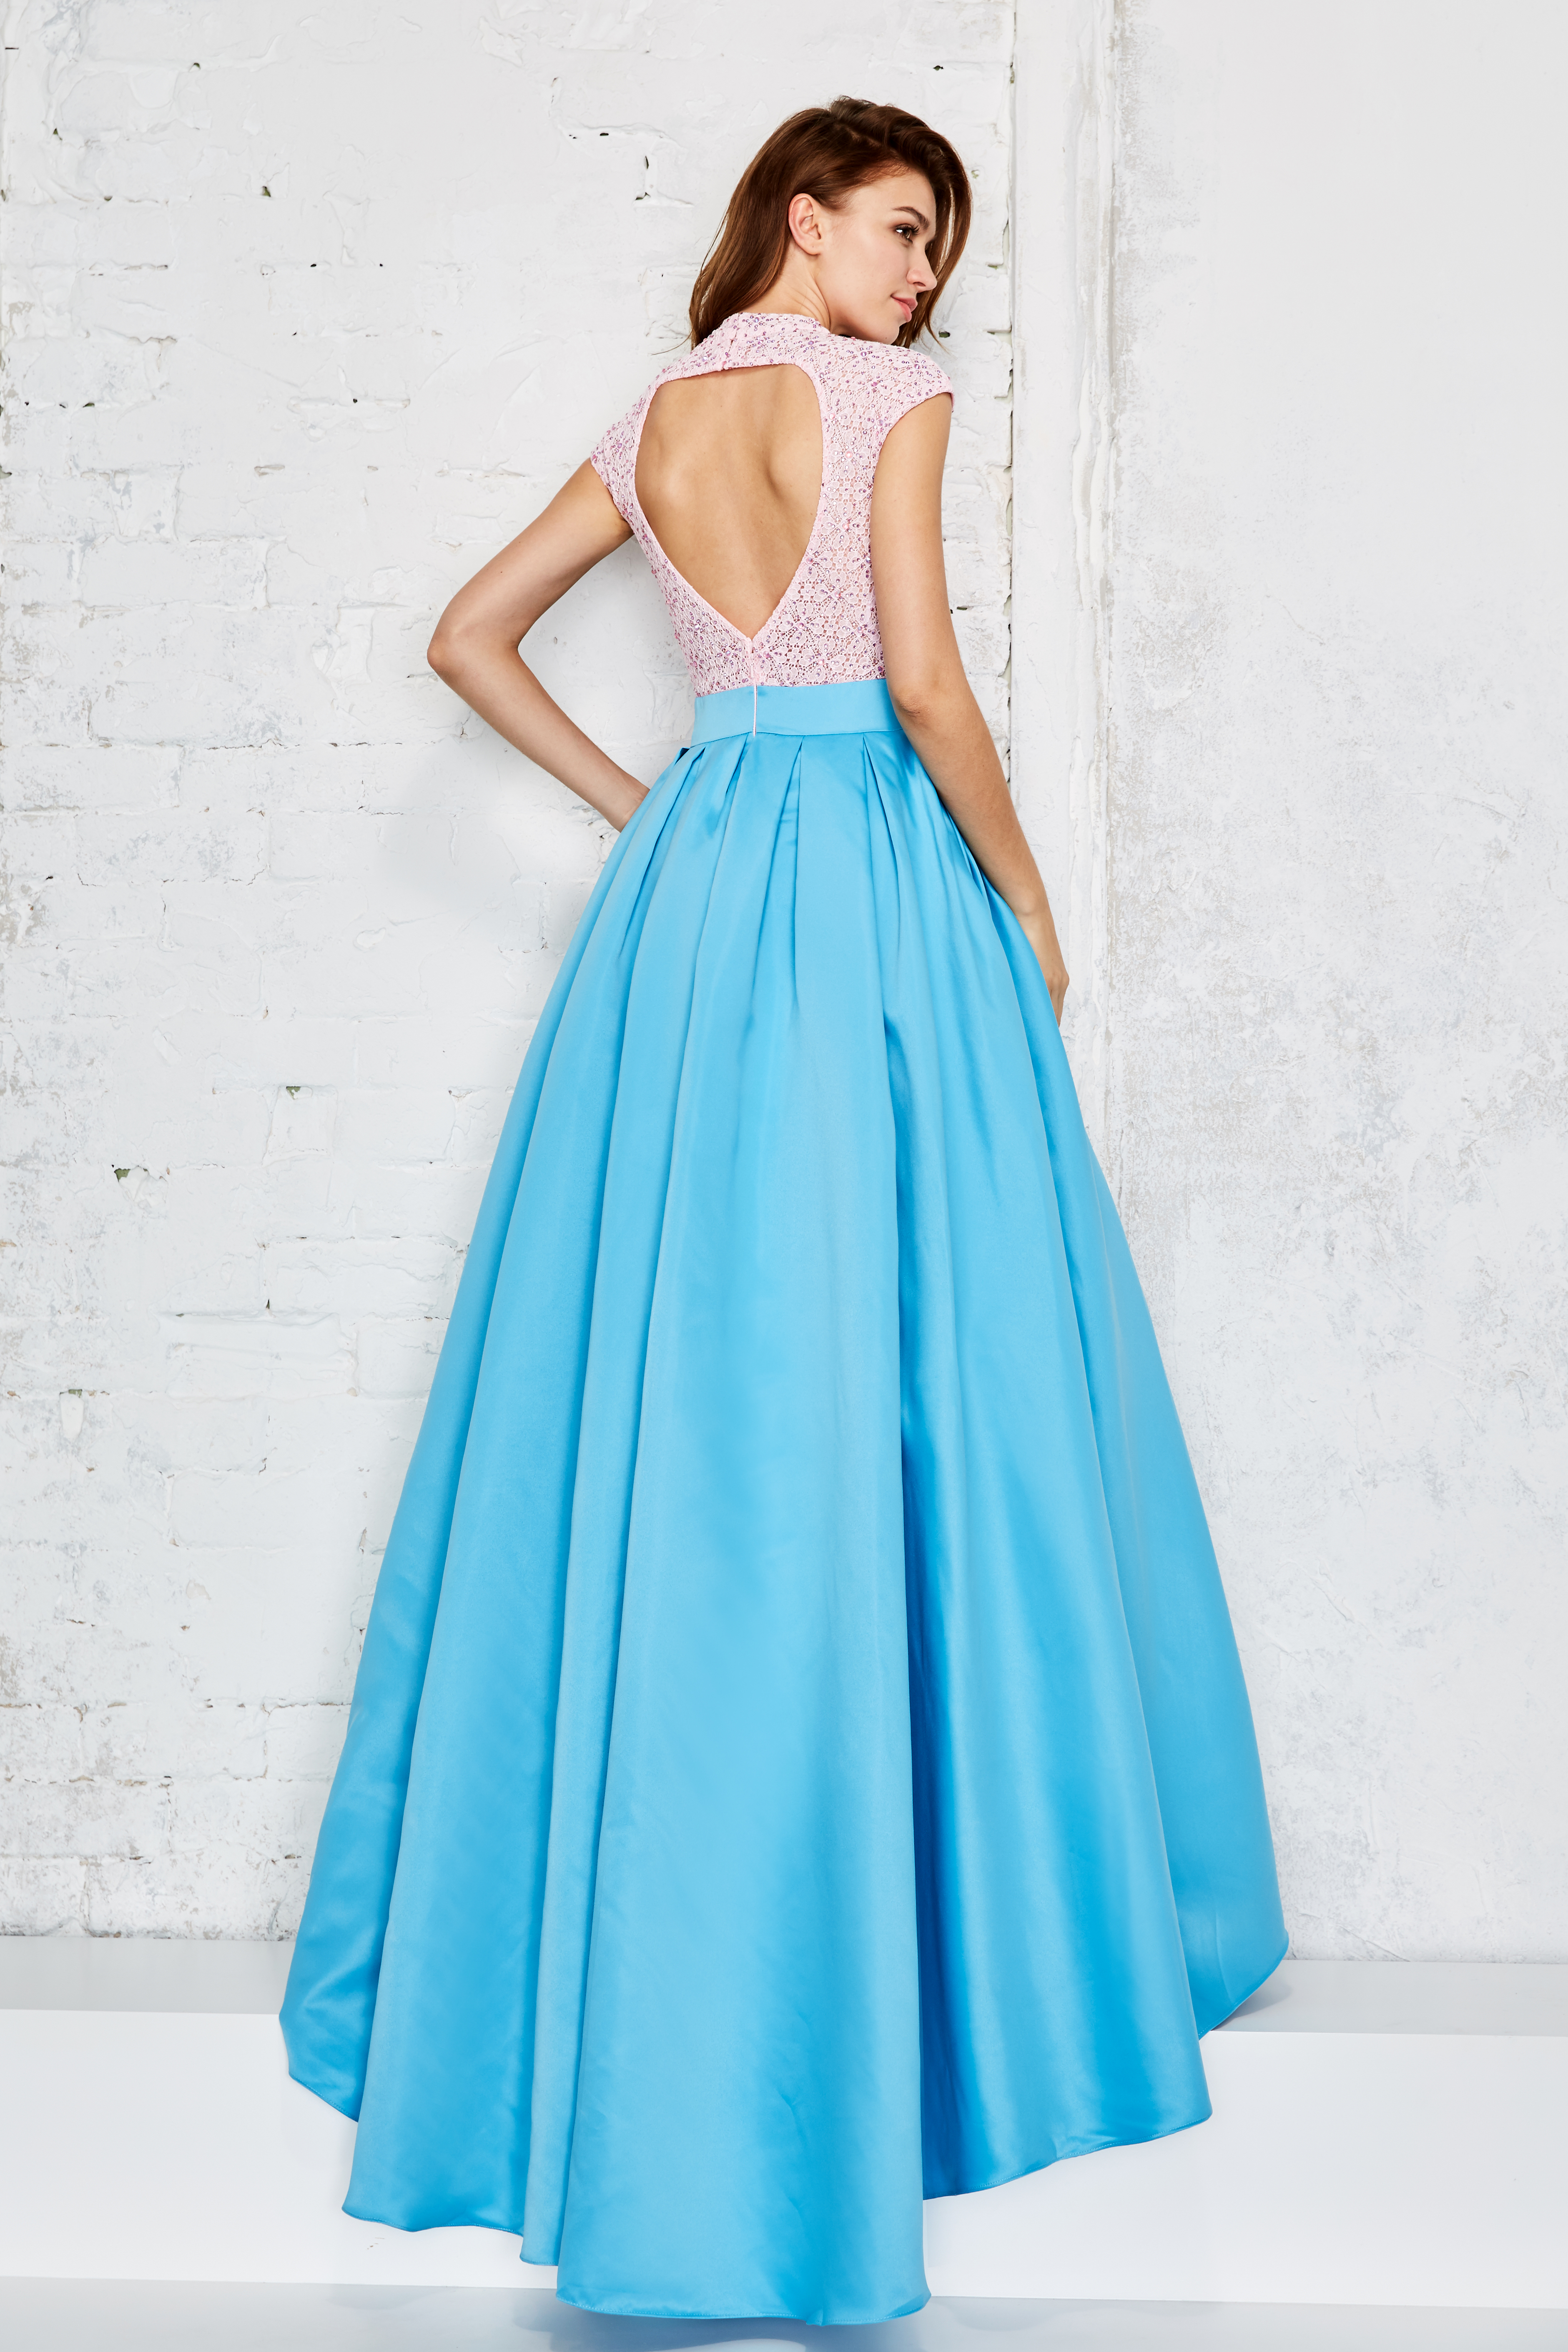 Enchanting Prom Dress Halifax Image Collection - Womens Dresses ...